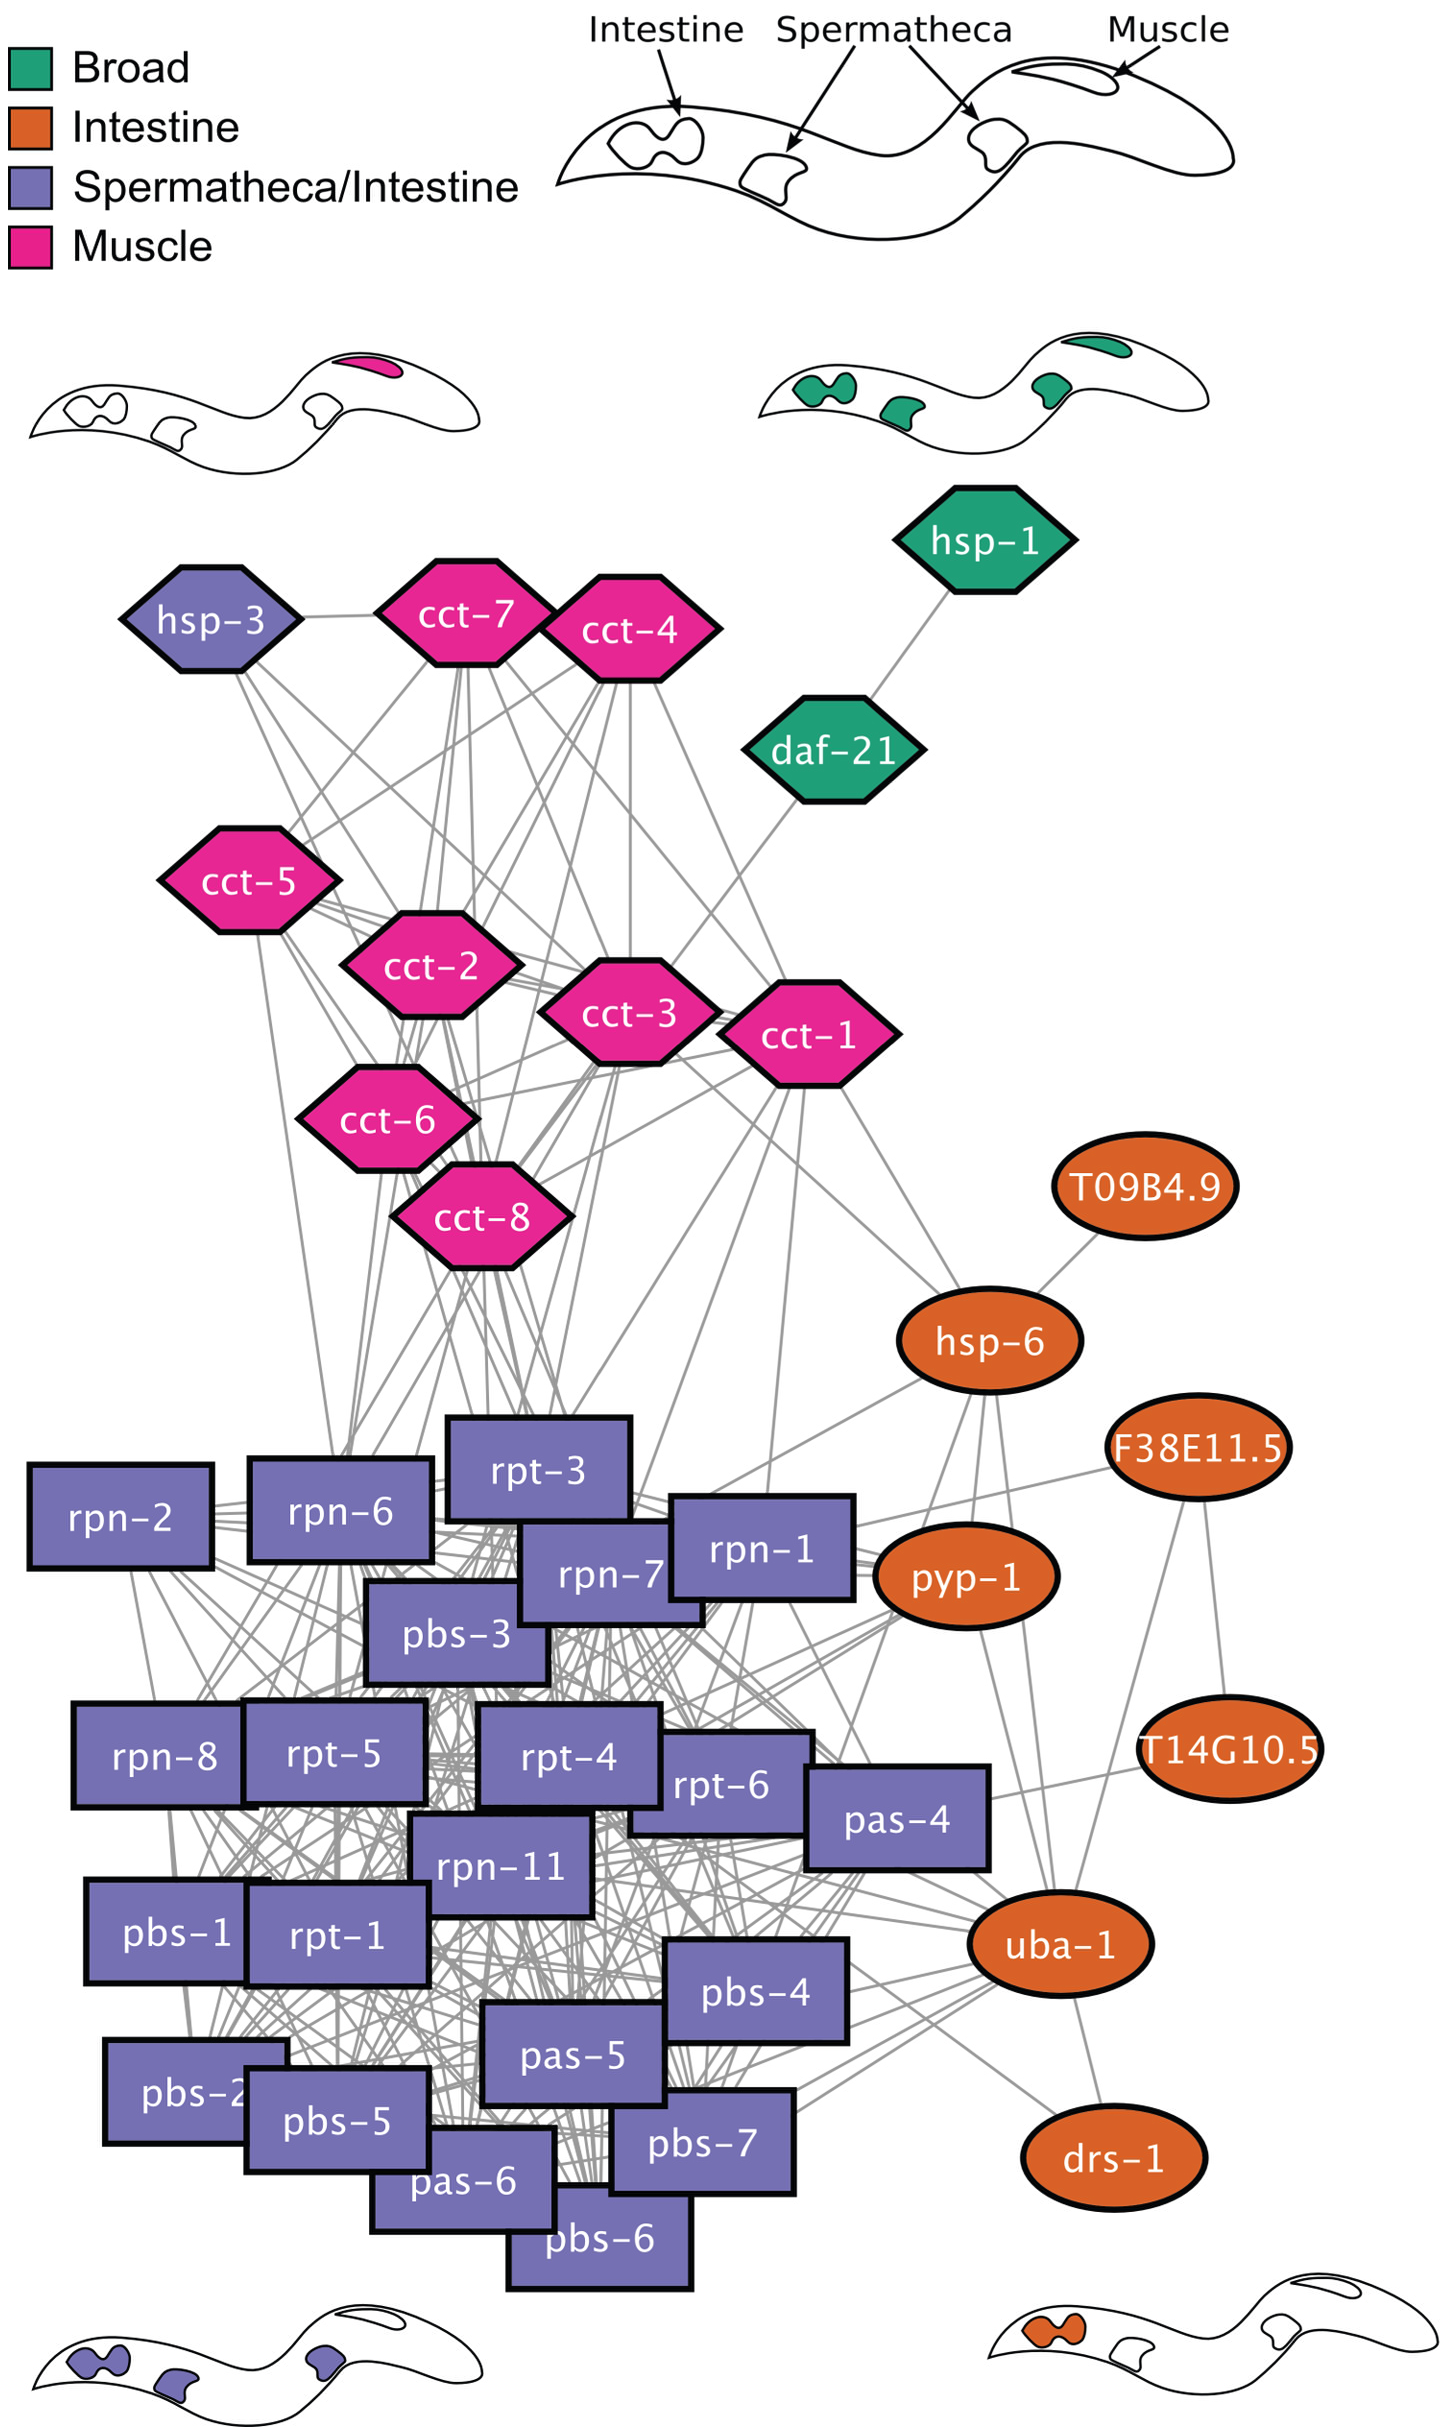 Network analysis of HSR regulators.